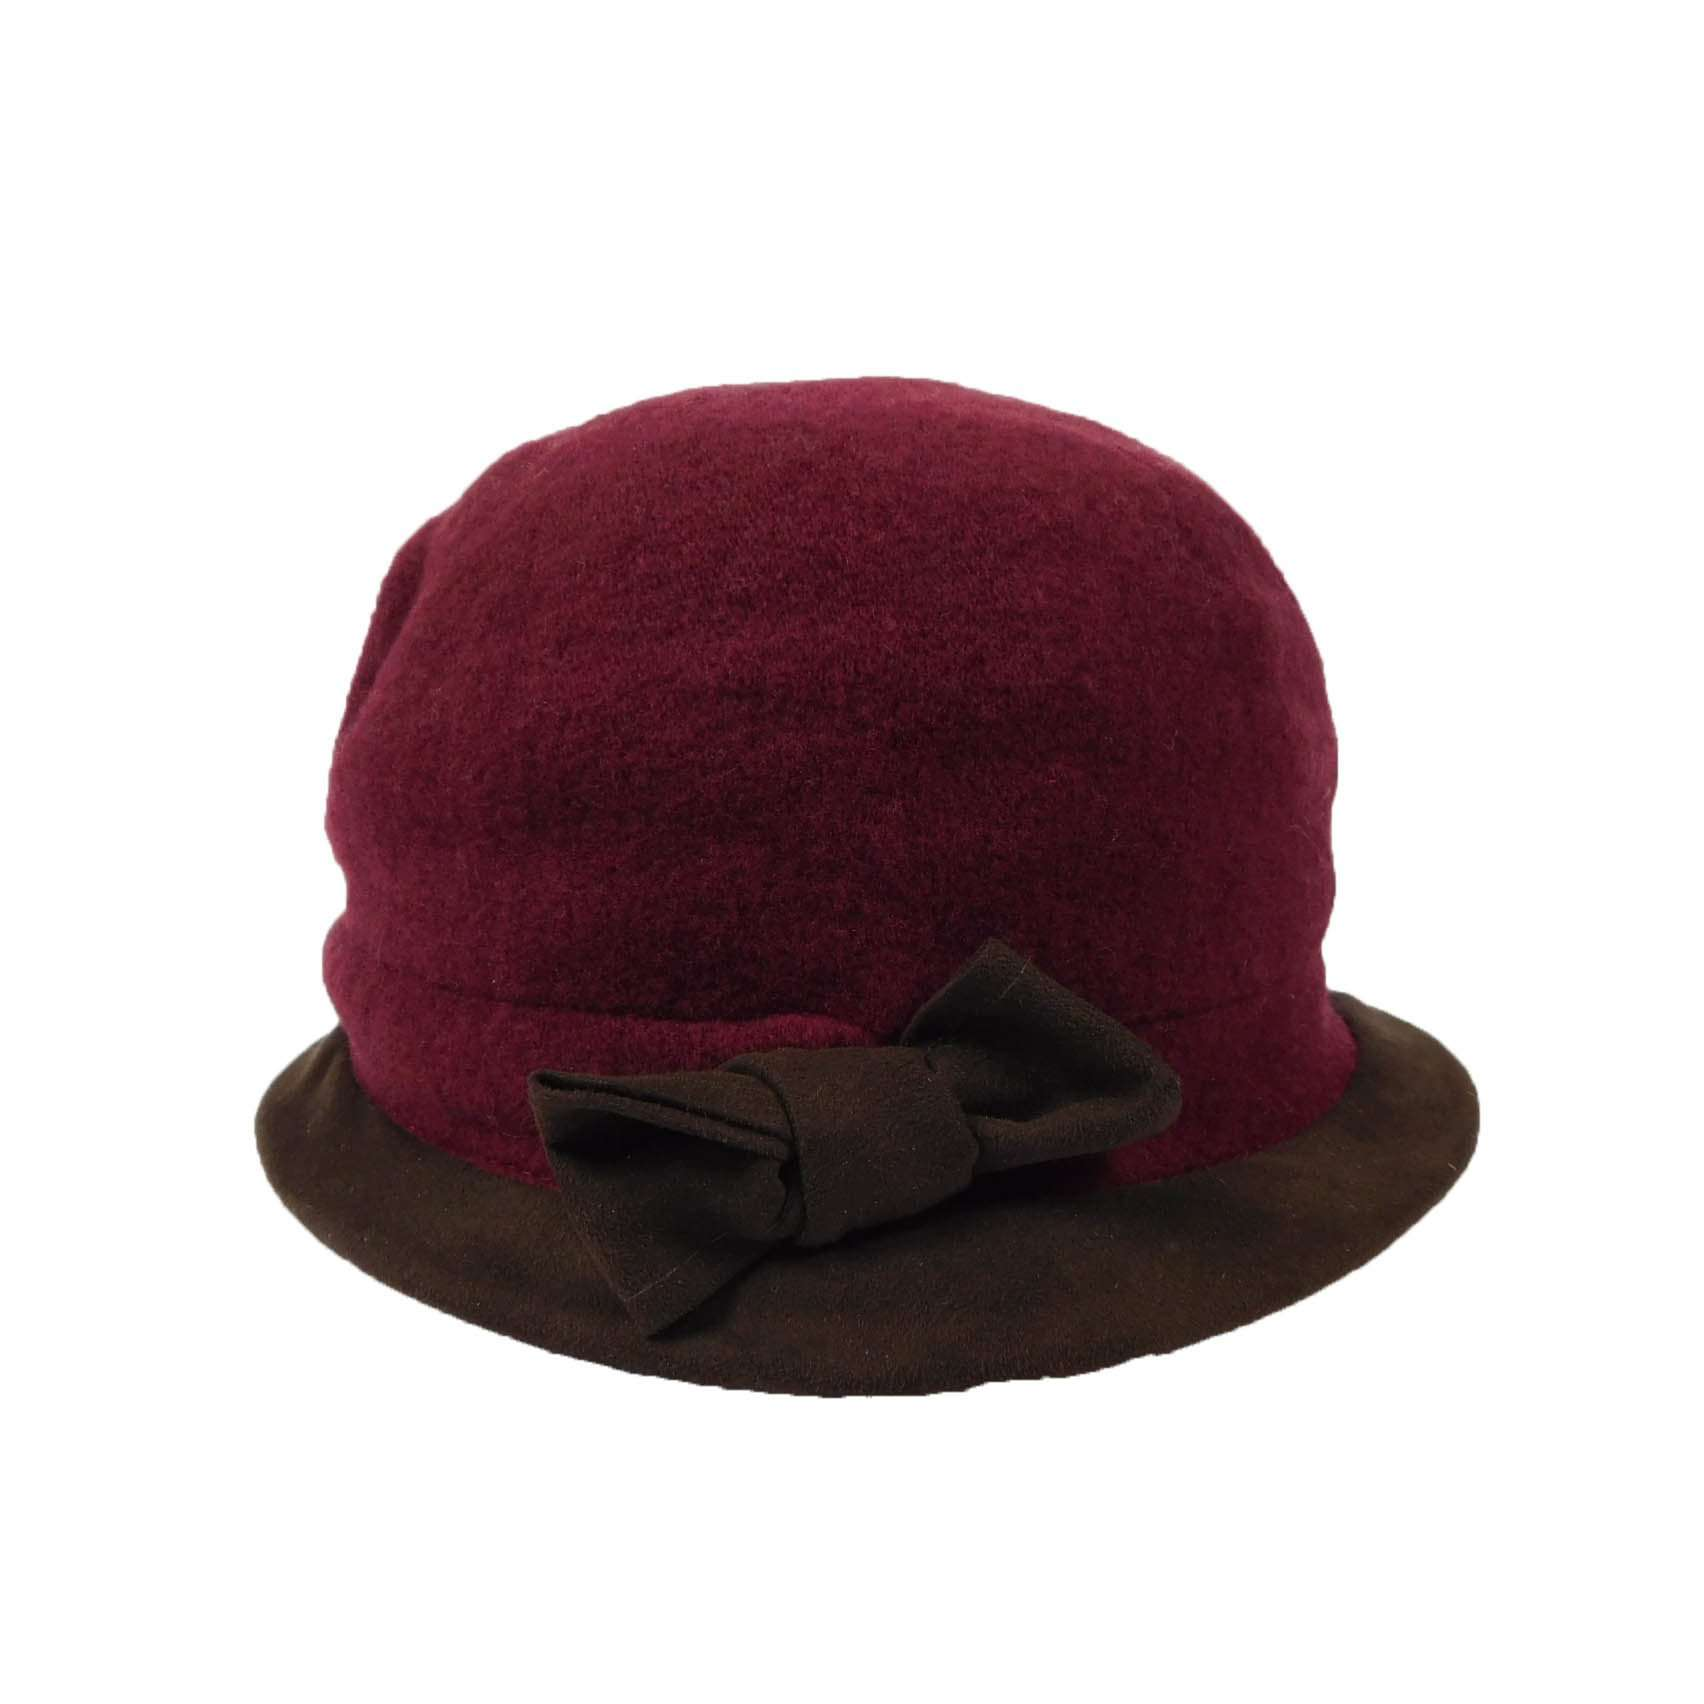 Two Tone Small Cloche - SetarTrading Hats